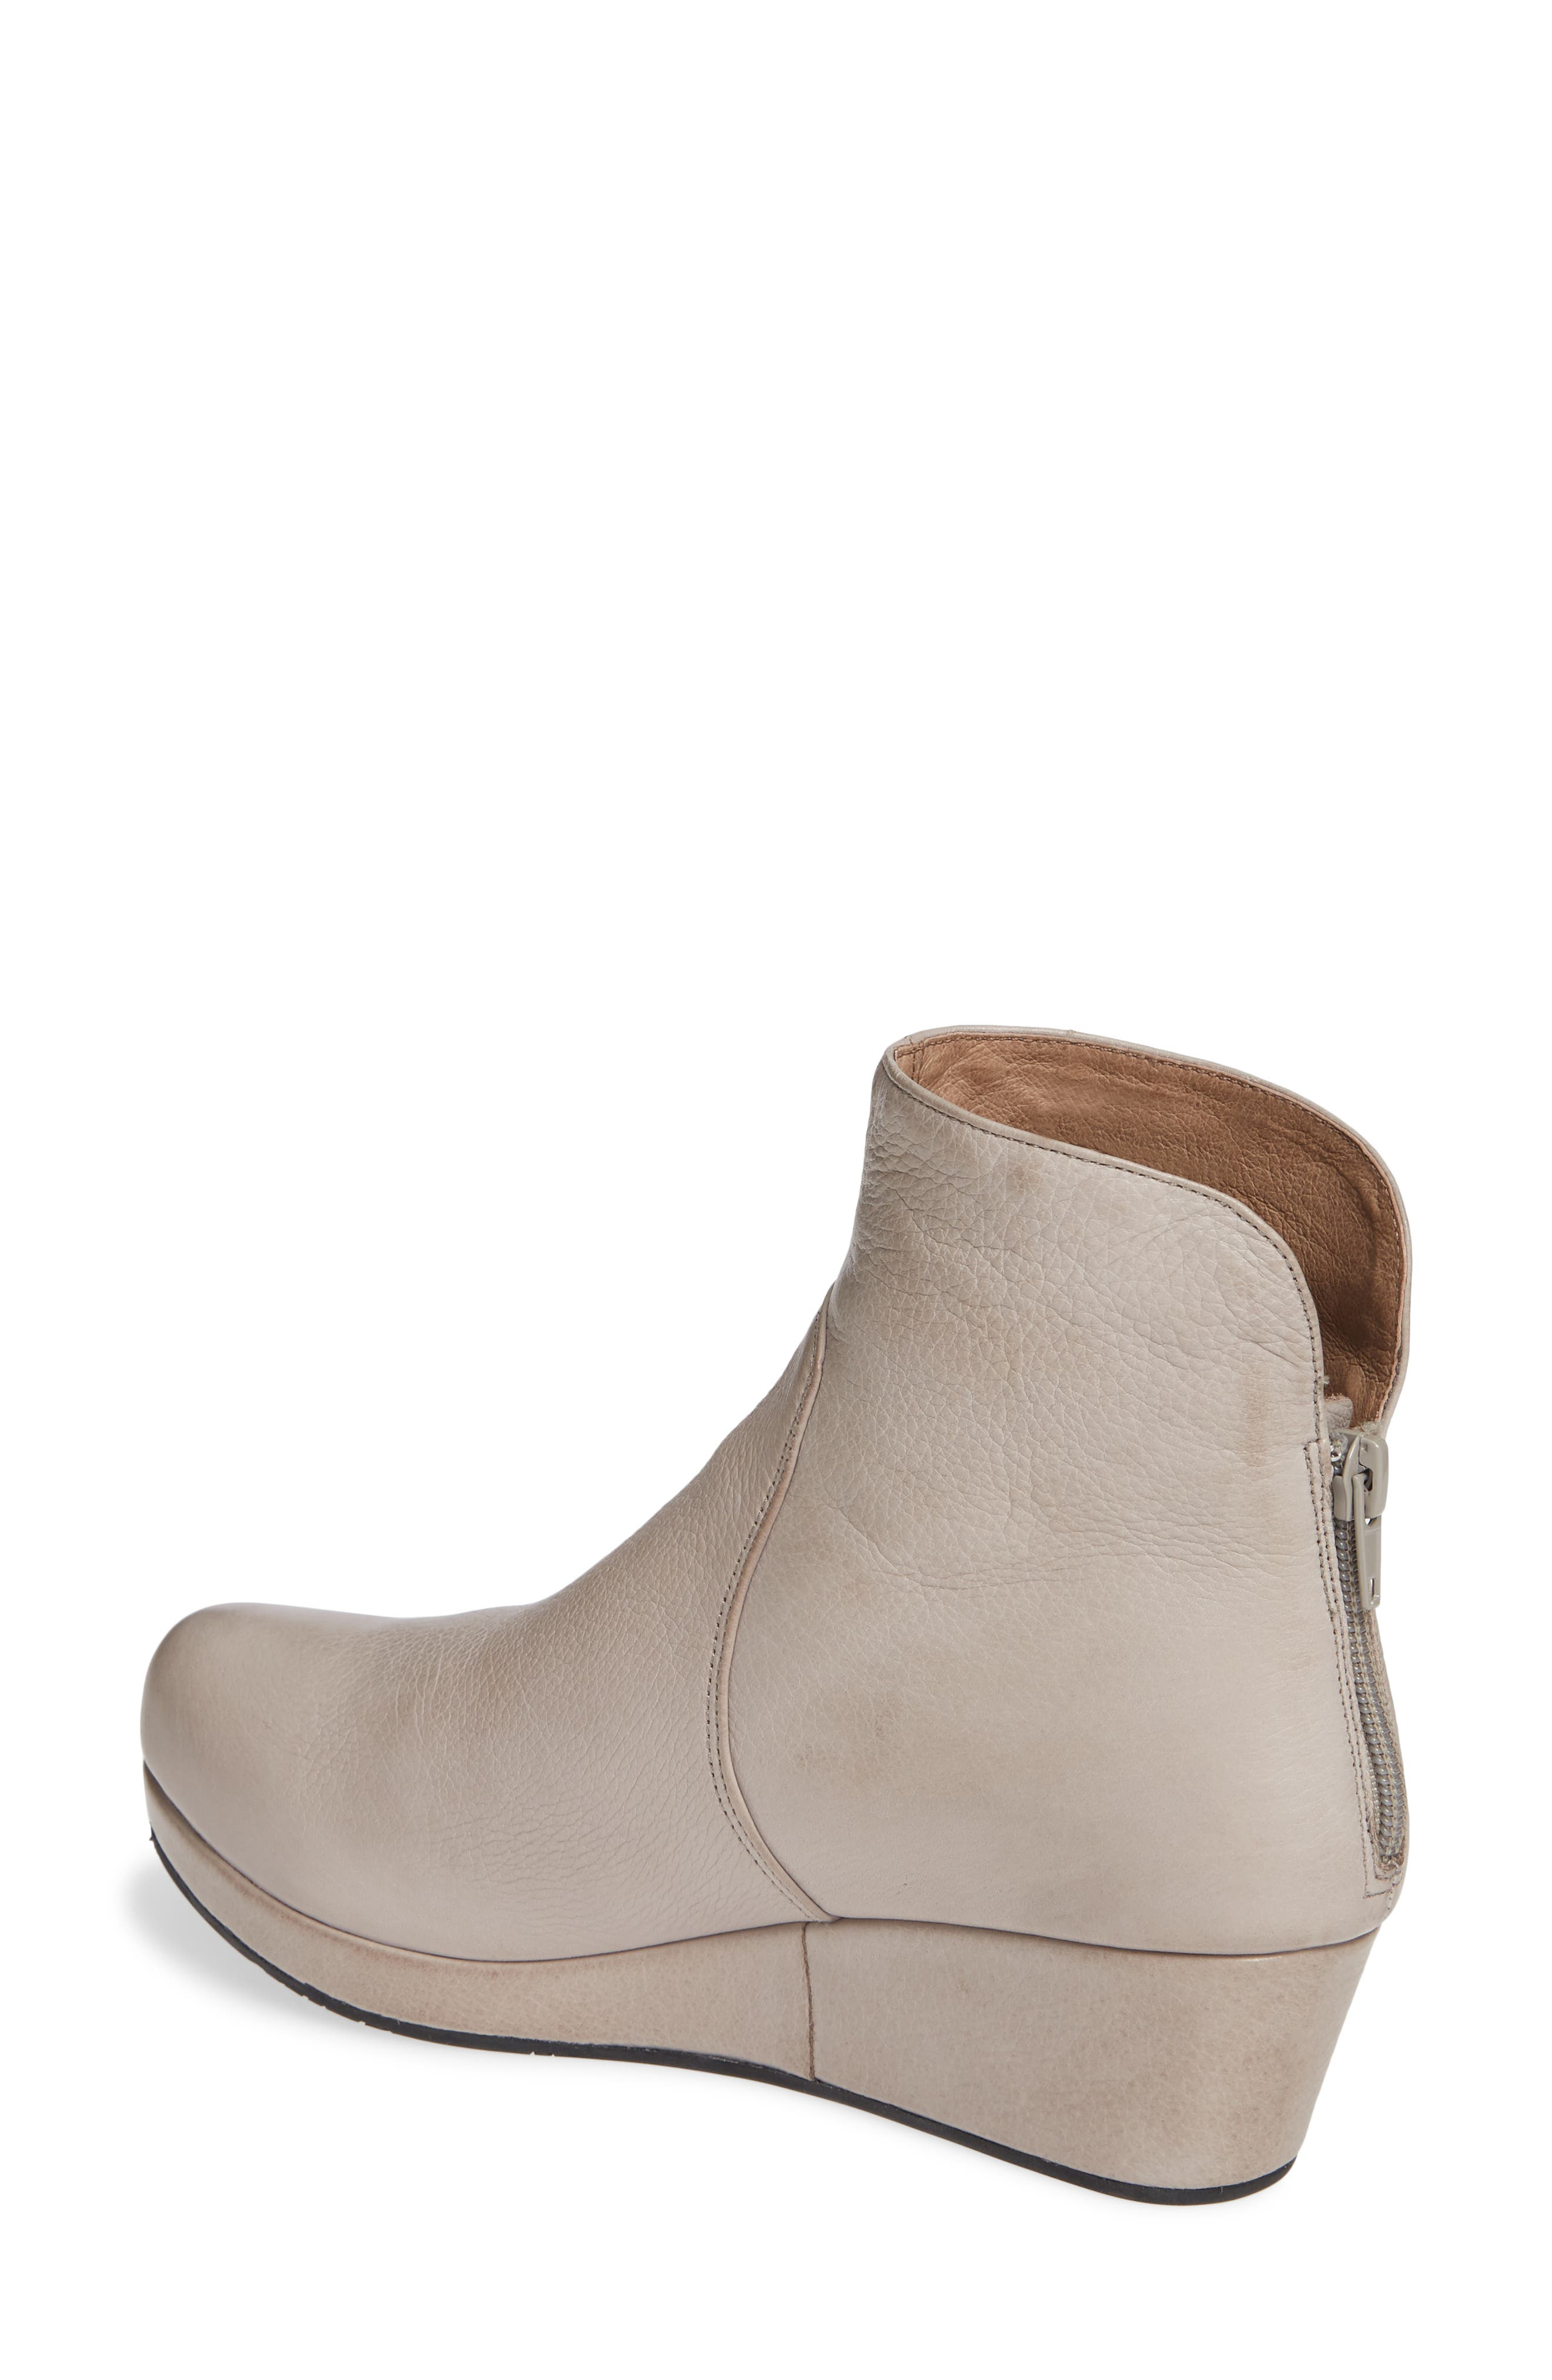 Yarden Wedge Bootie,                             Alternate thumbnail 2, color,                             GREY LEATHER